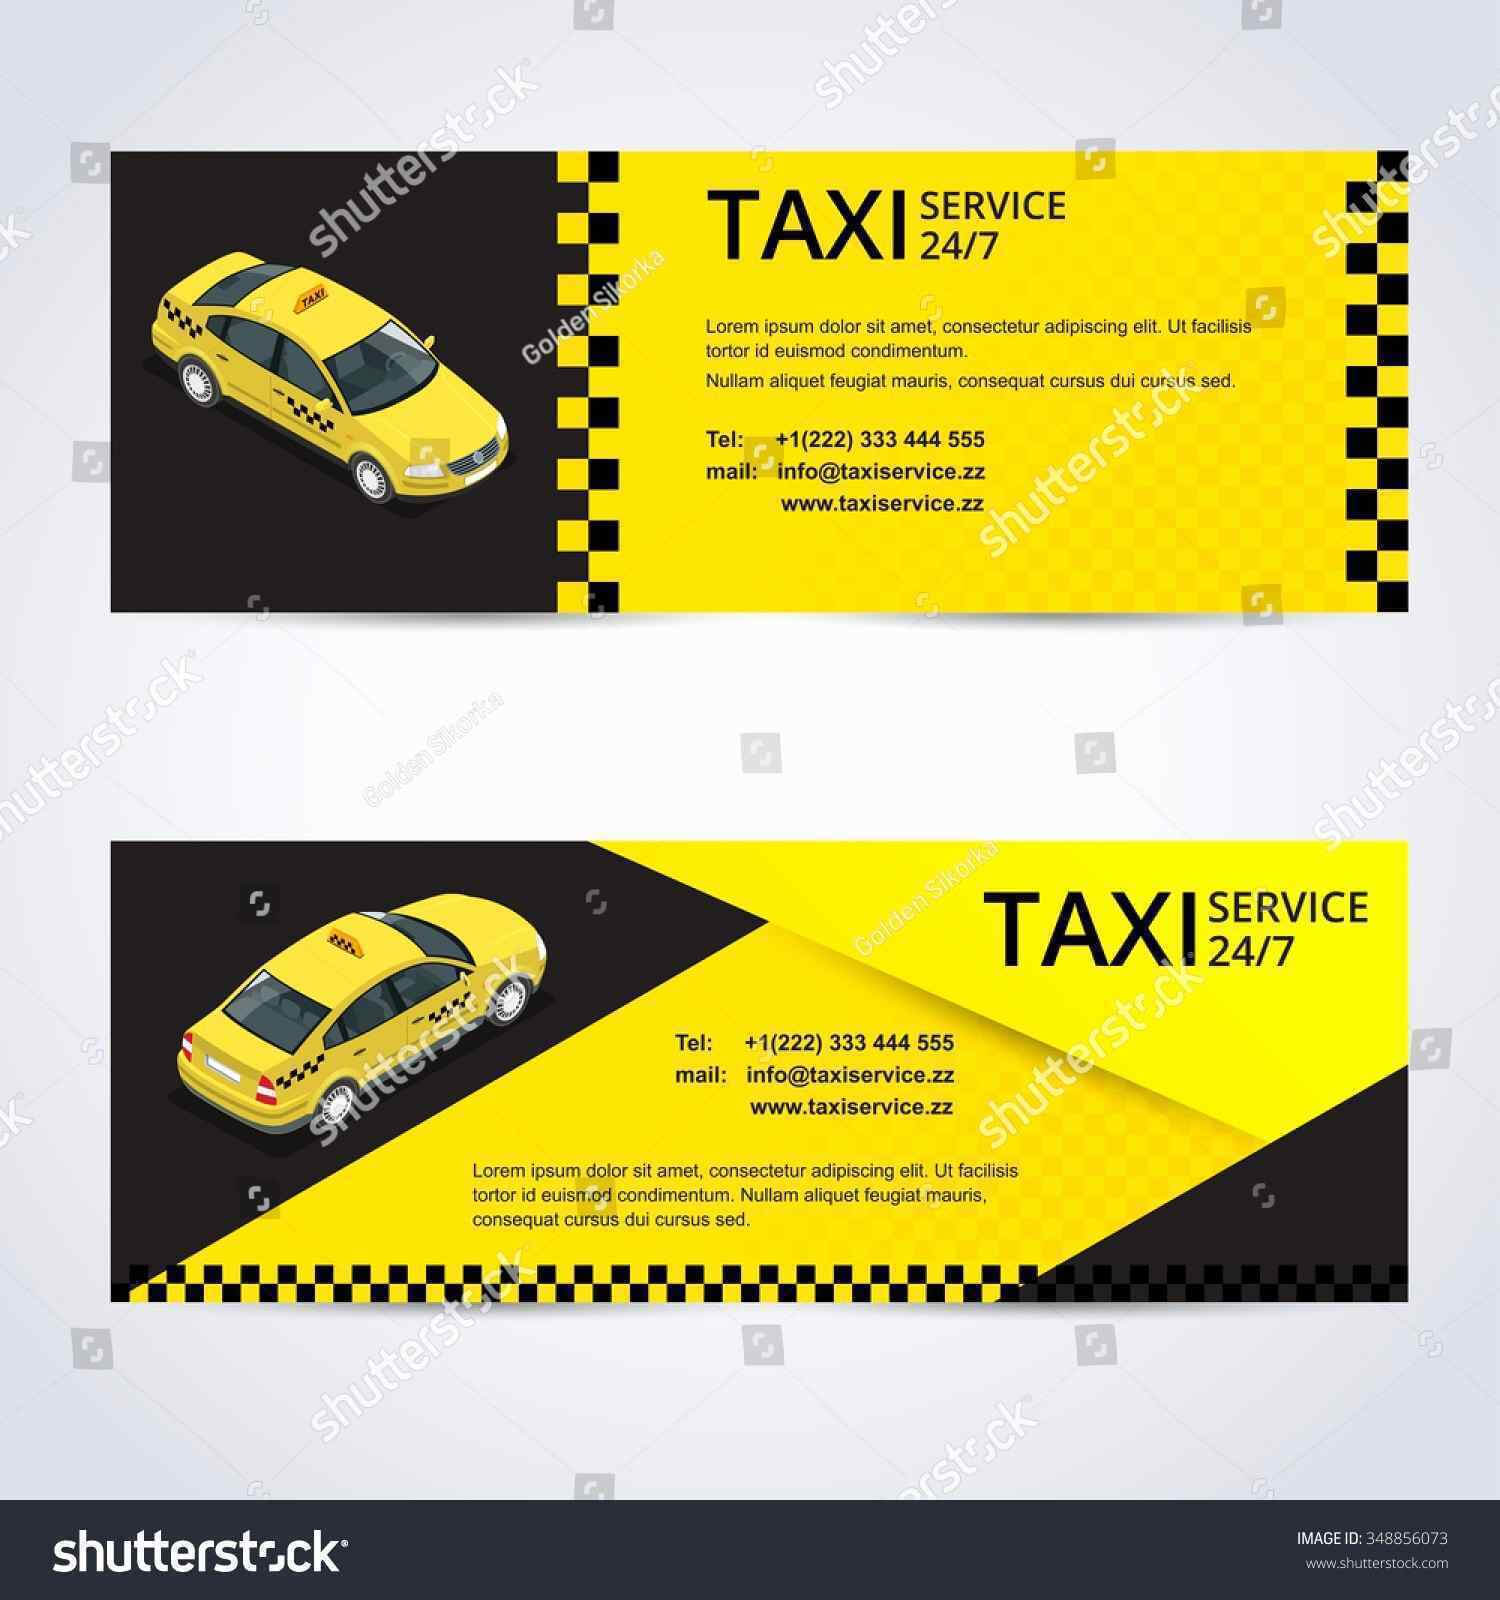 Transport Business Cards Templates Free